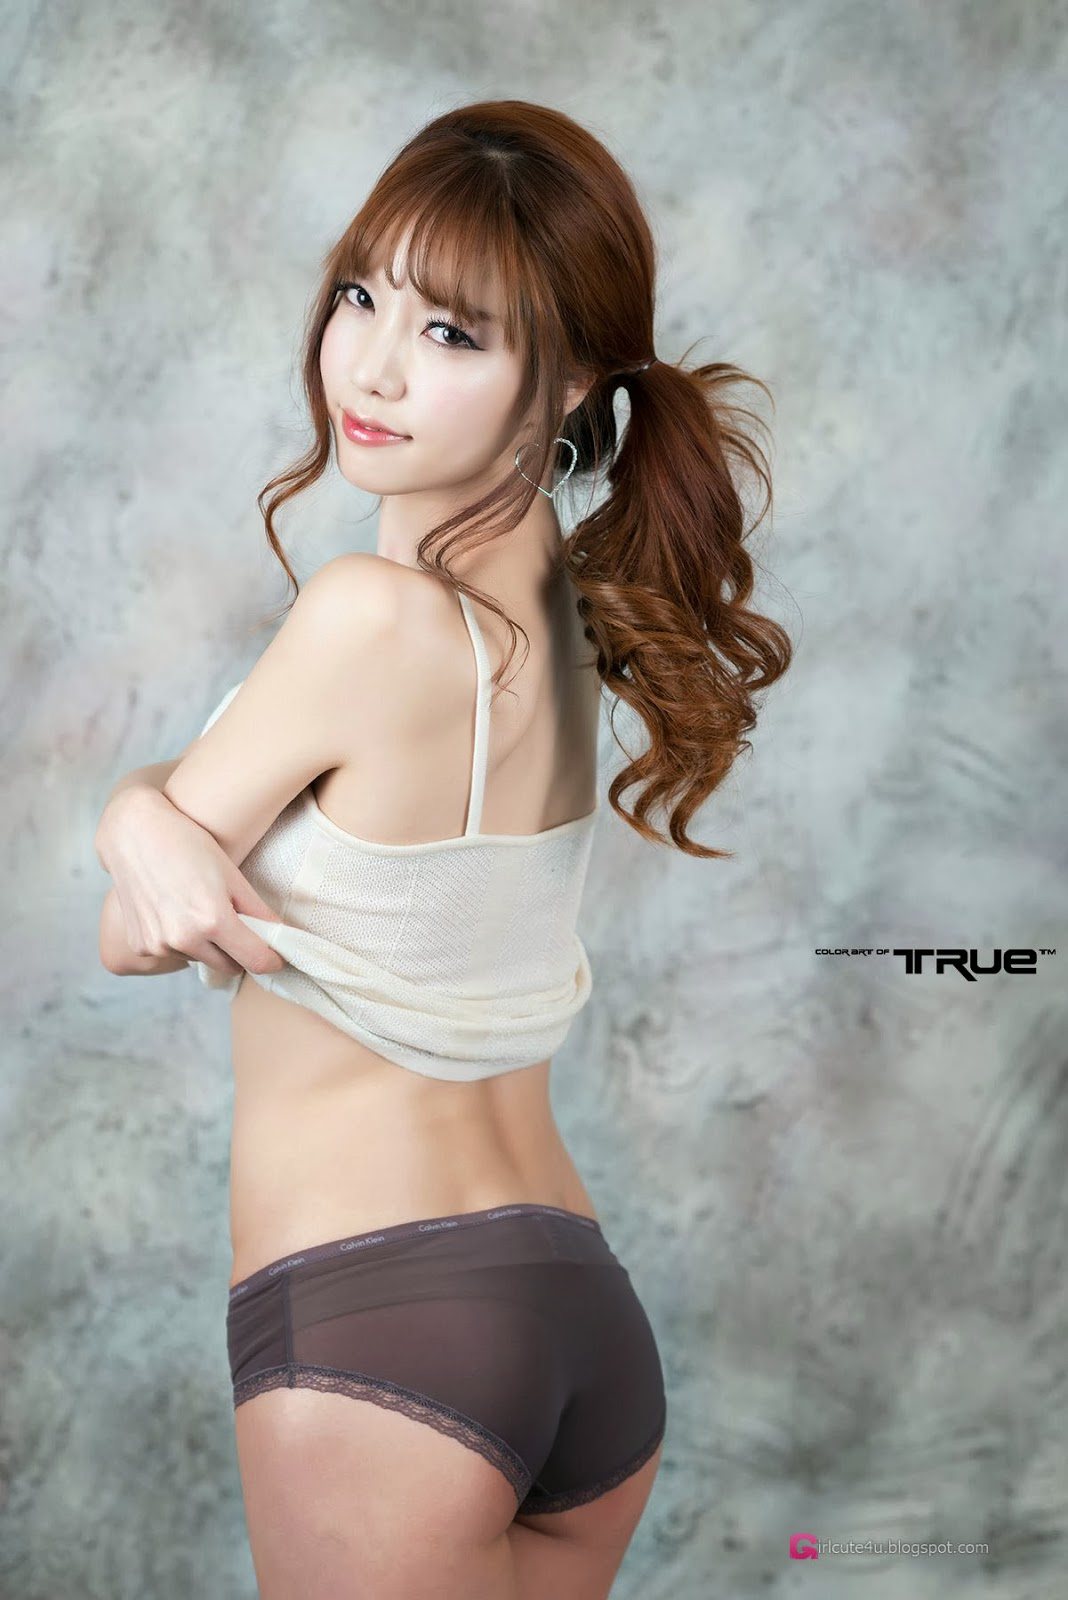 4 Han Min Young - very cute asian girl-girlcute4u.blogspot.com